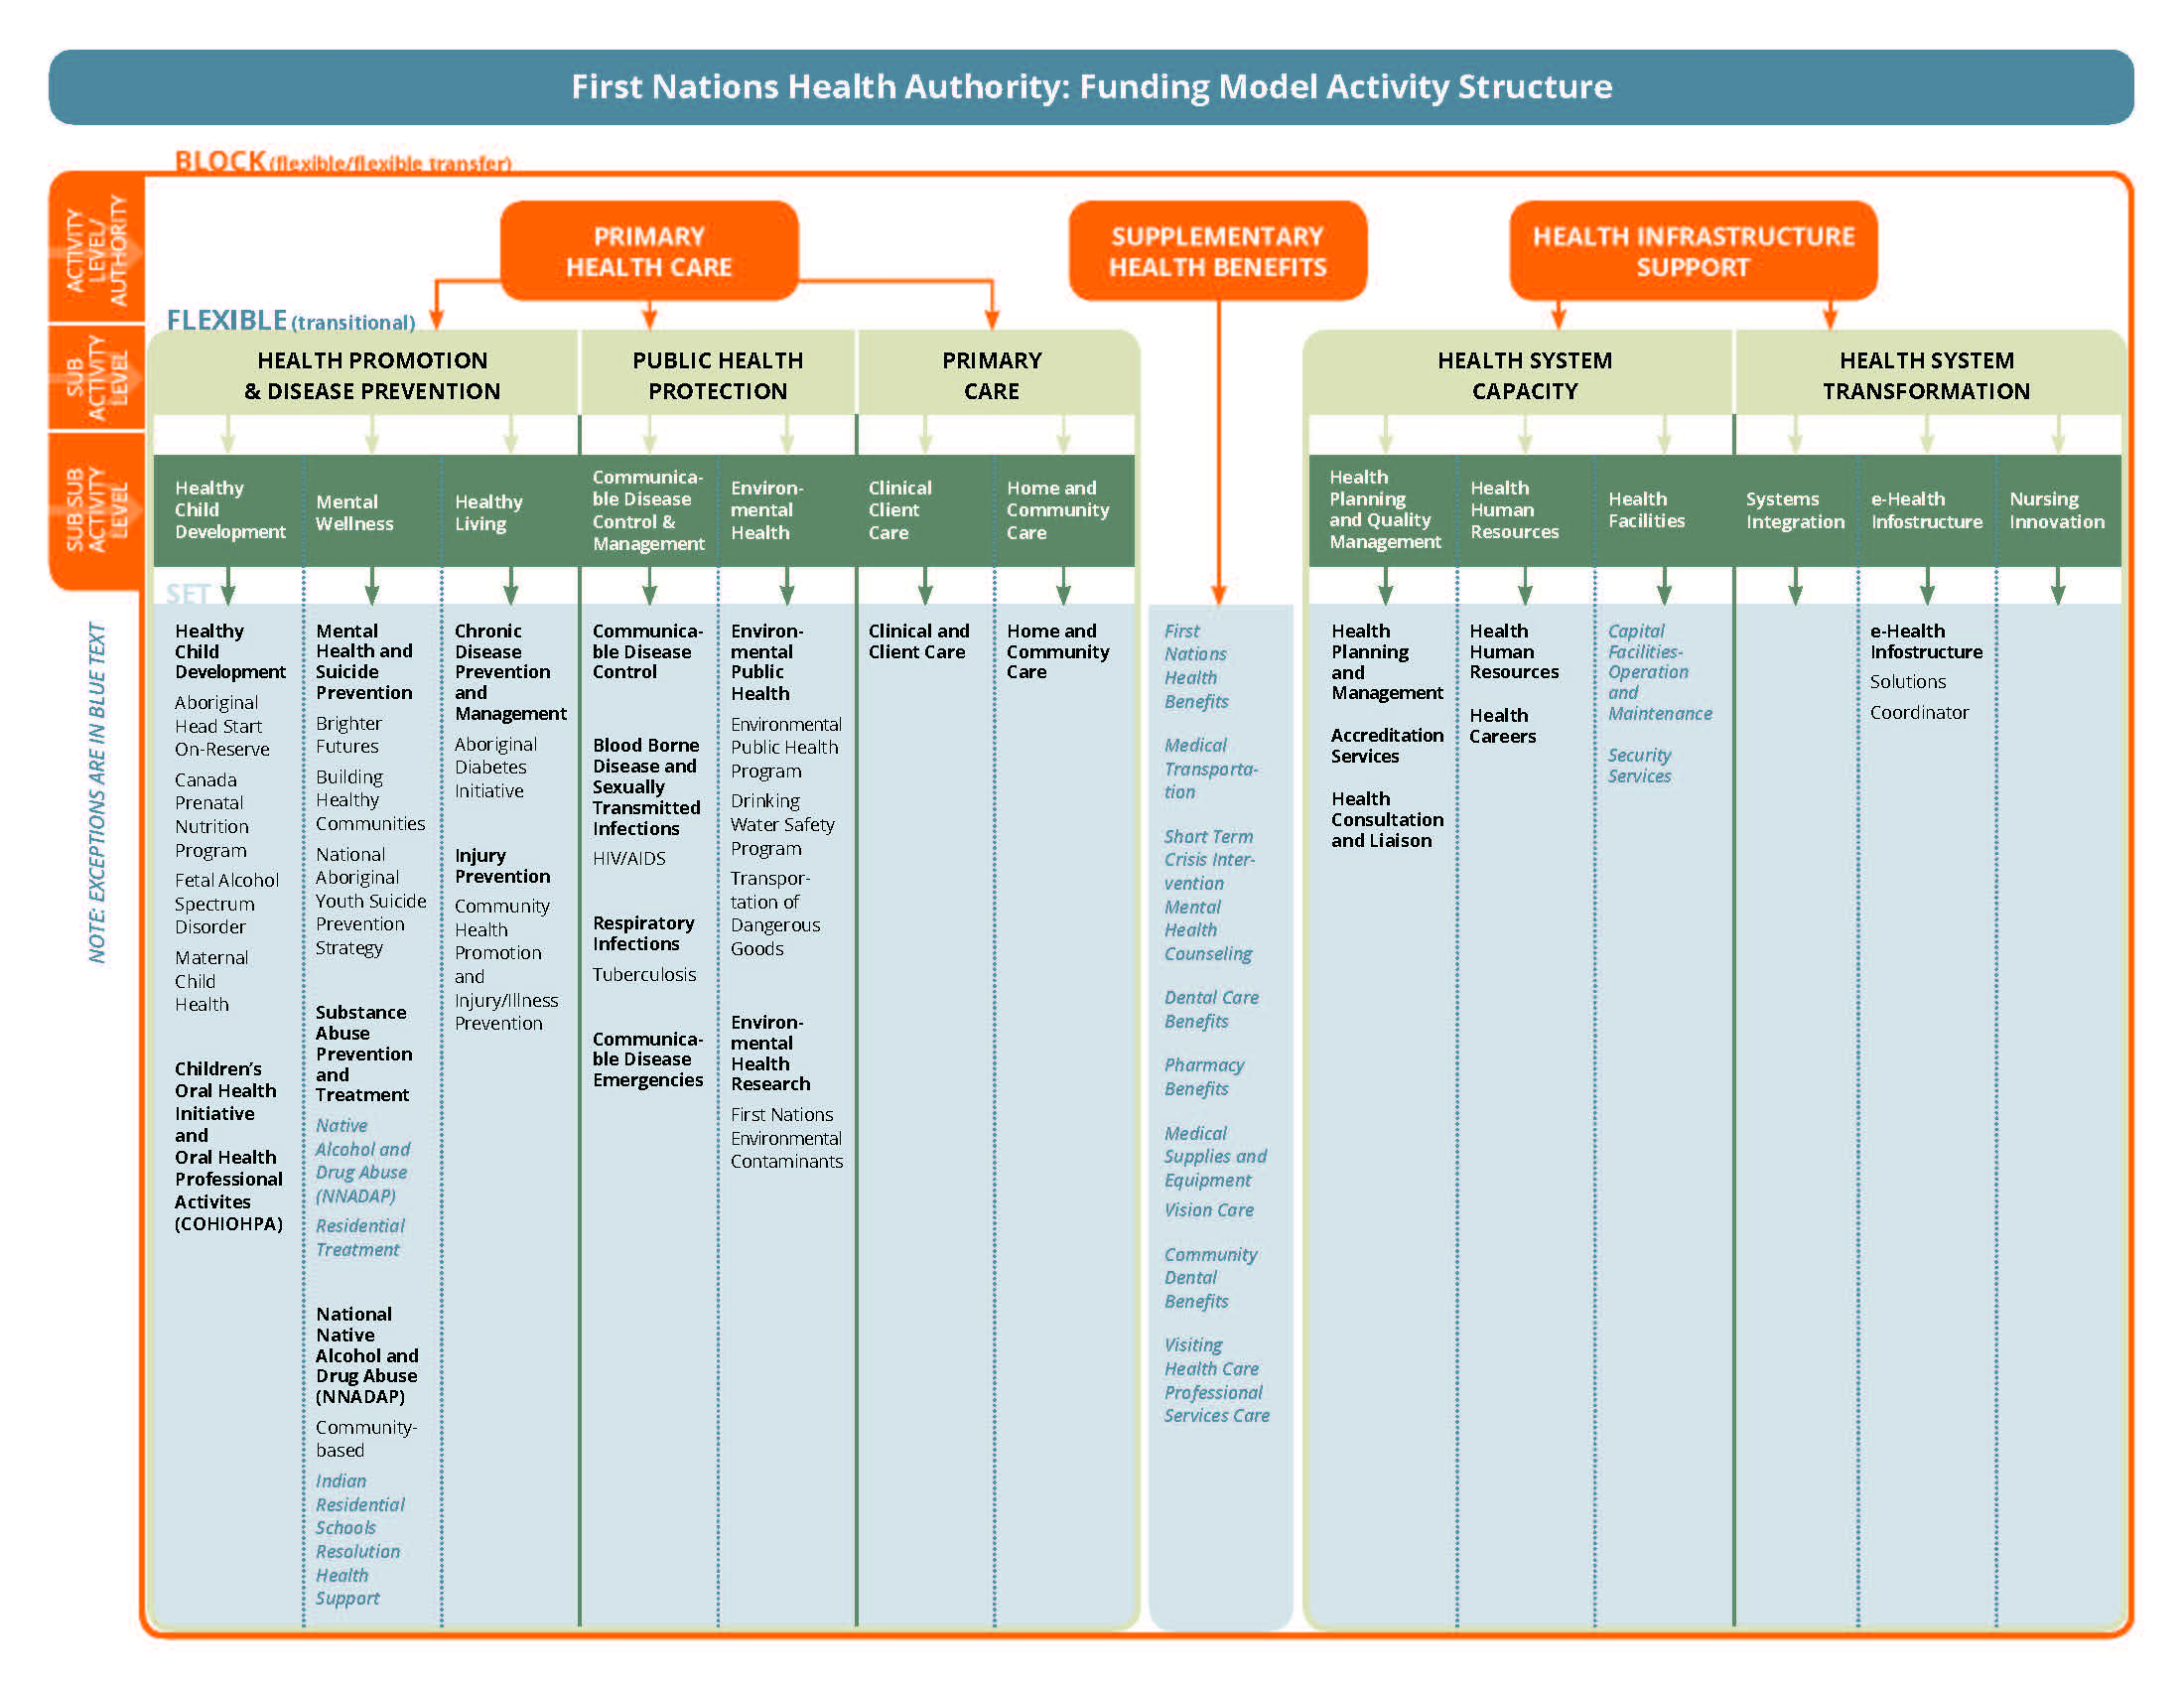 Proforma-FNHA-Funding-Model-Activity-Structure.jpg